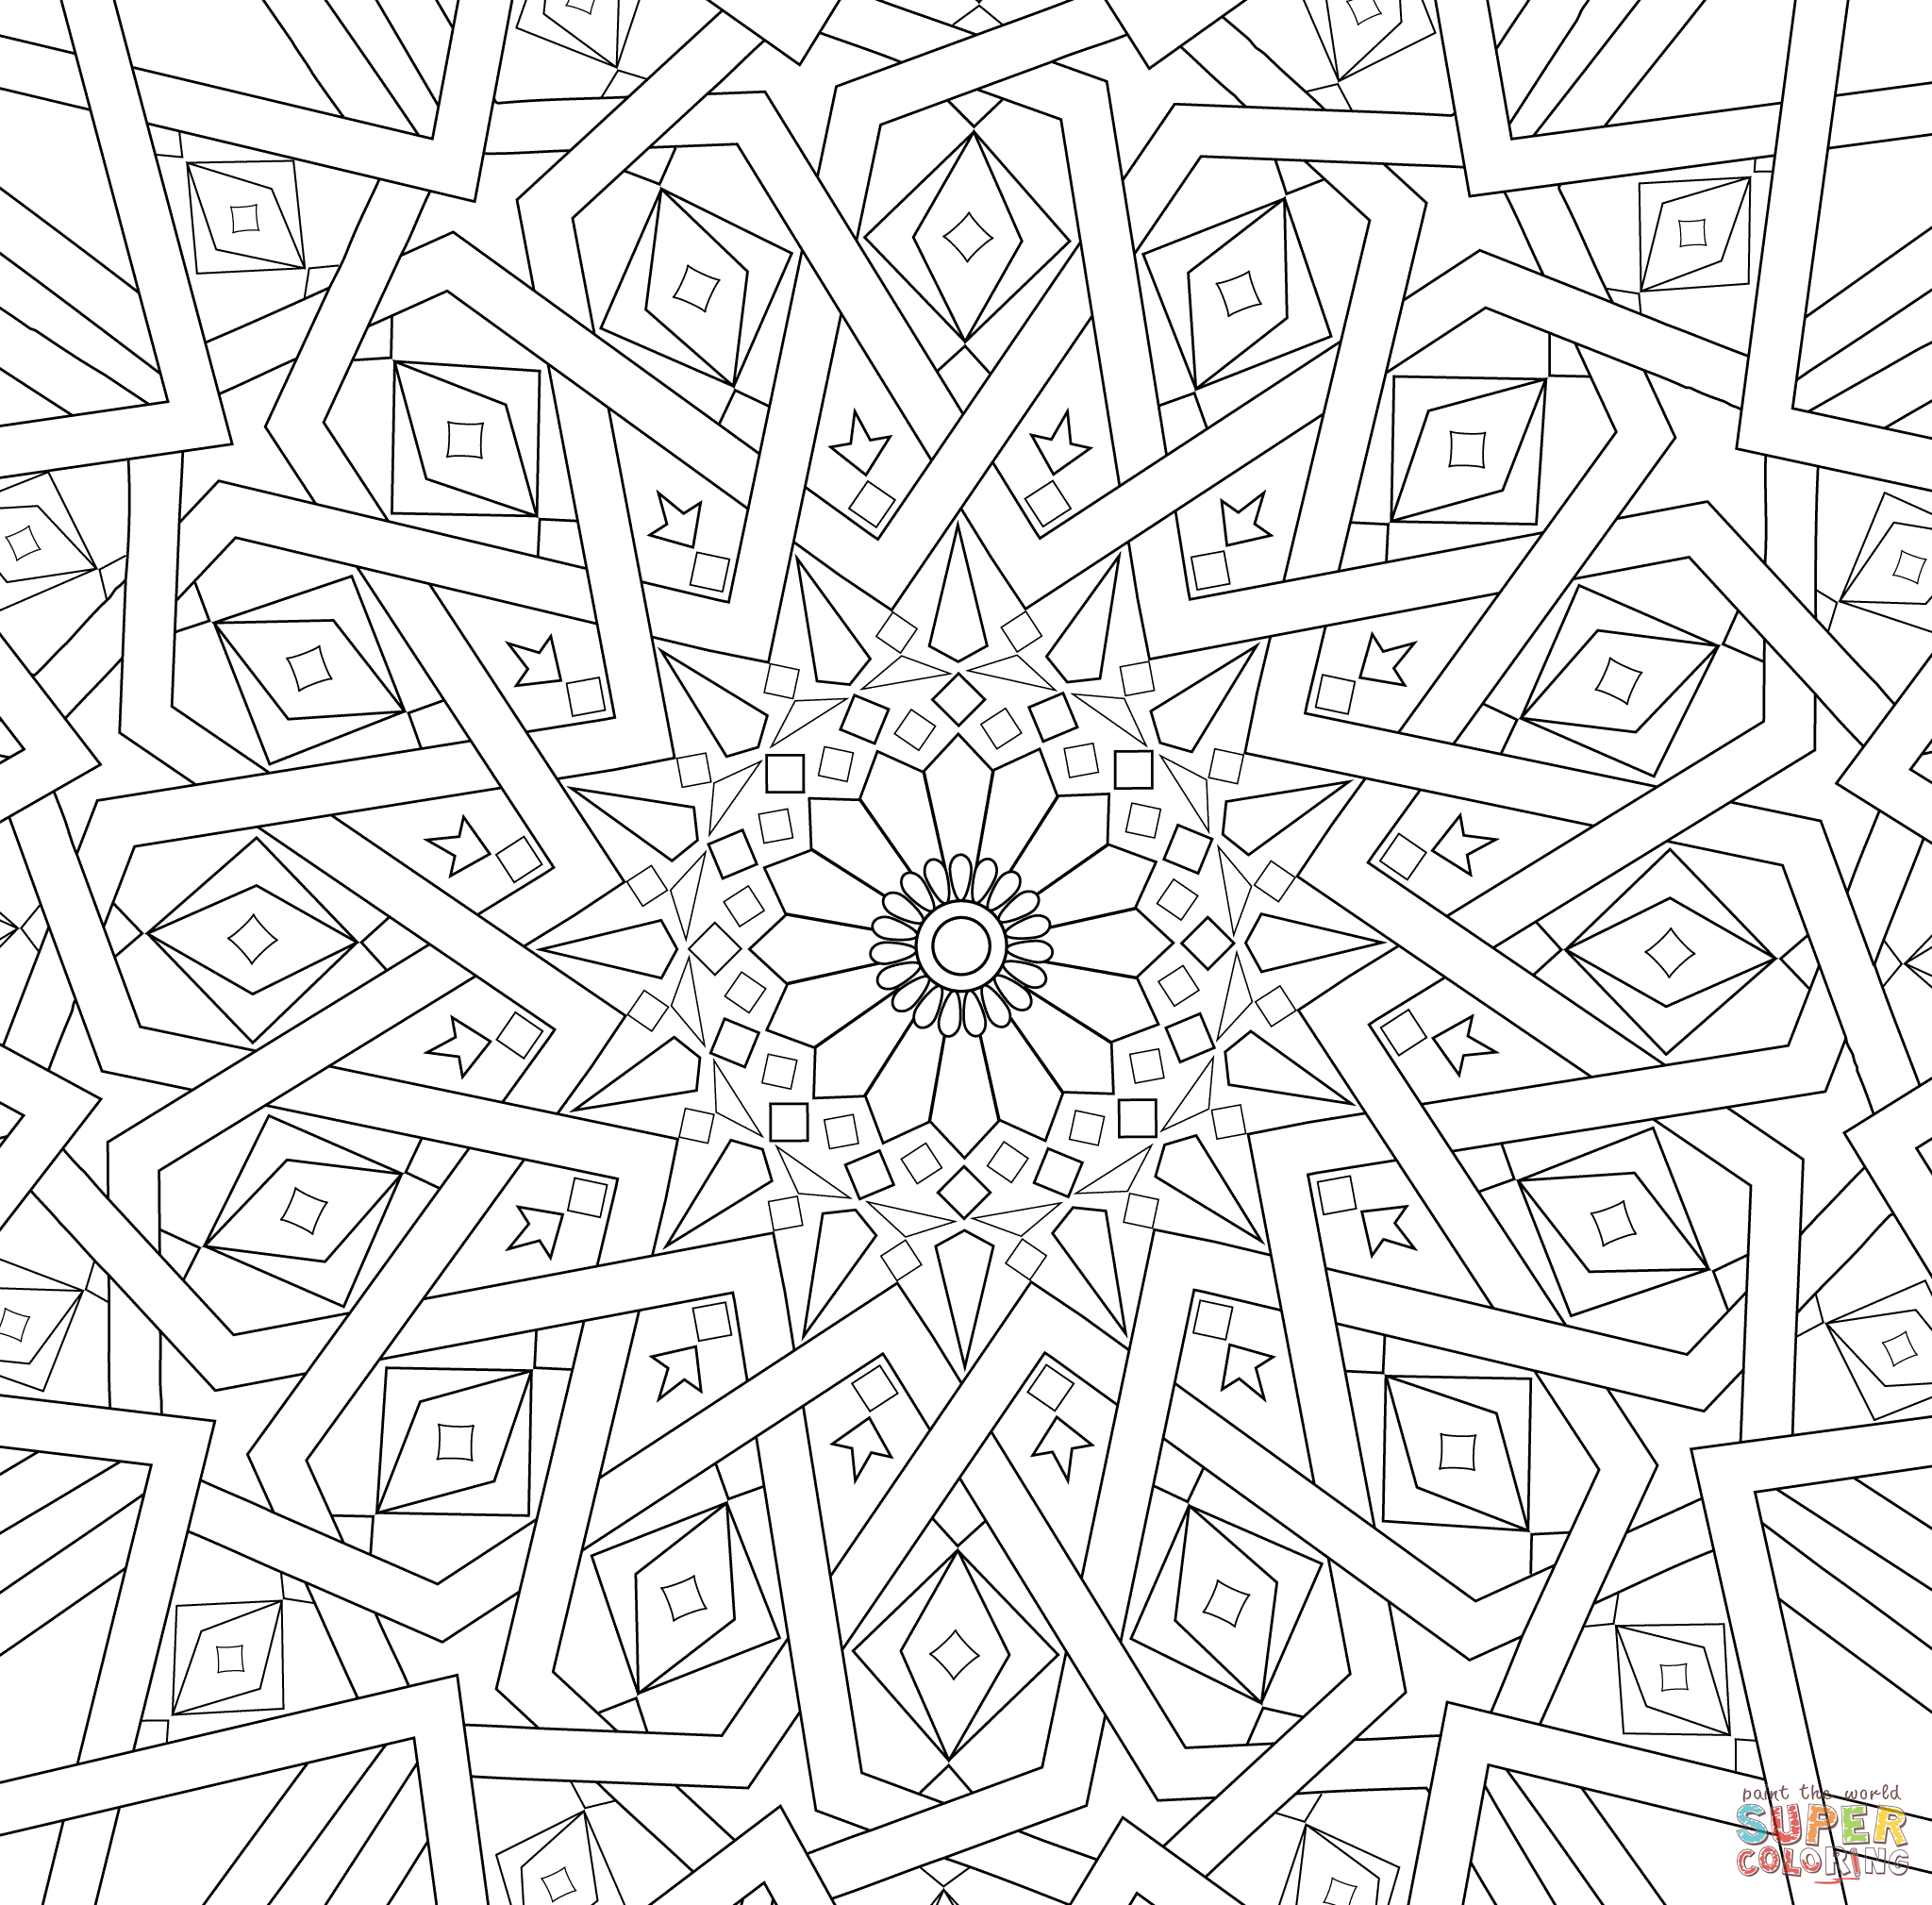 islamic art coloring pages islamic coloring pages 4 coloring kids coloring kids pages art coloring islamic